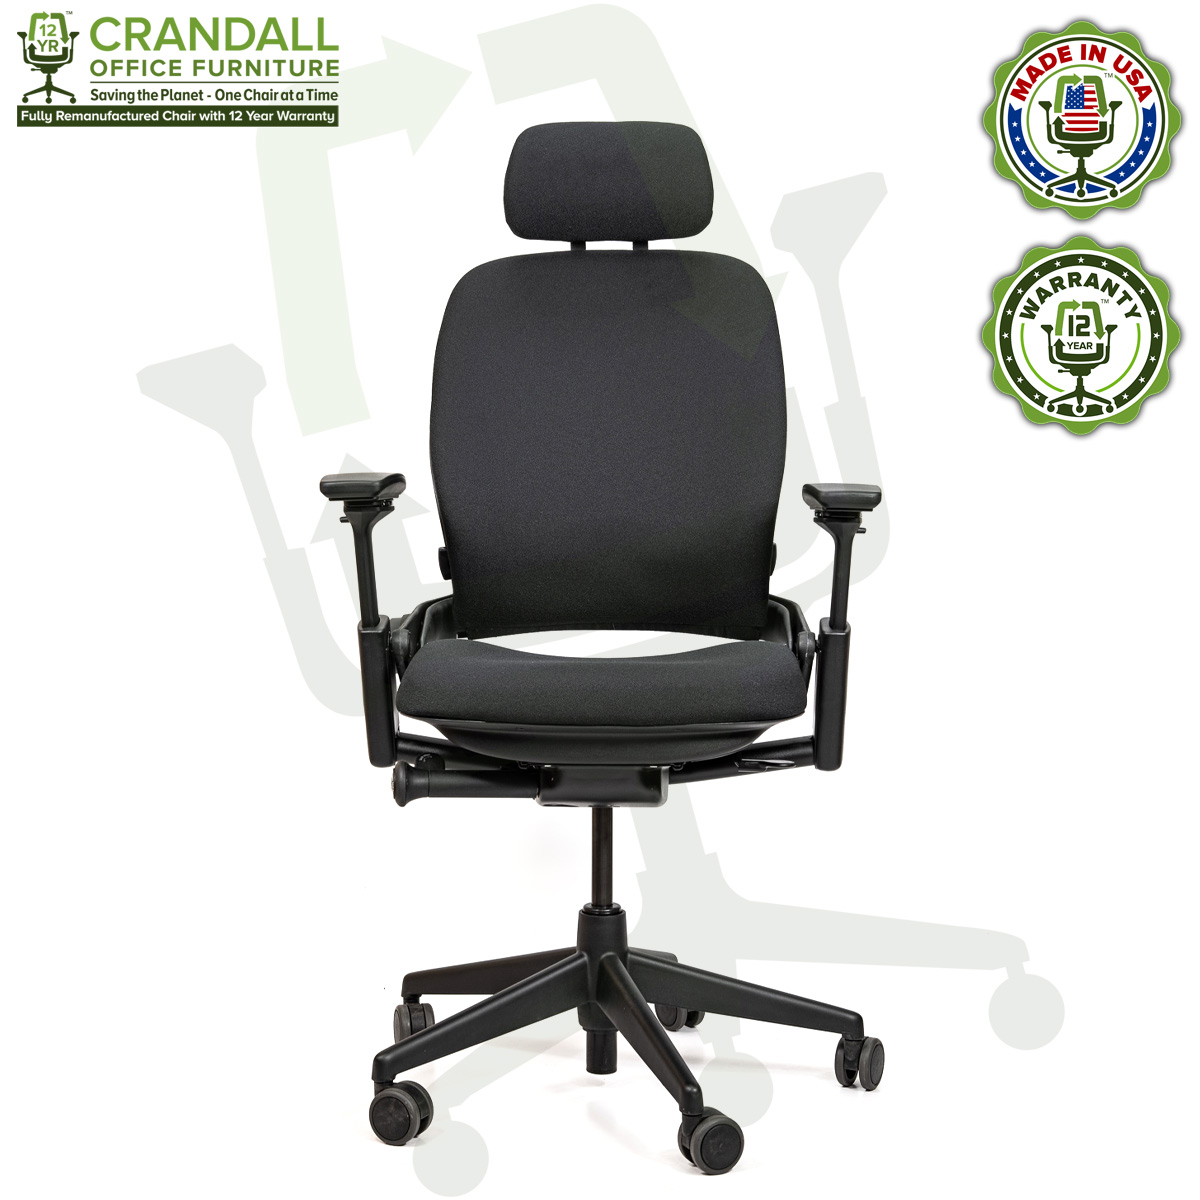 Crandall Office Furniture Remanufactured Steelcase V2 Leap Chair with Headrest 01